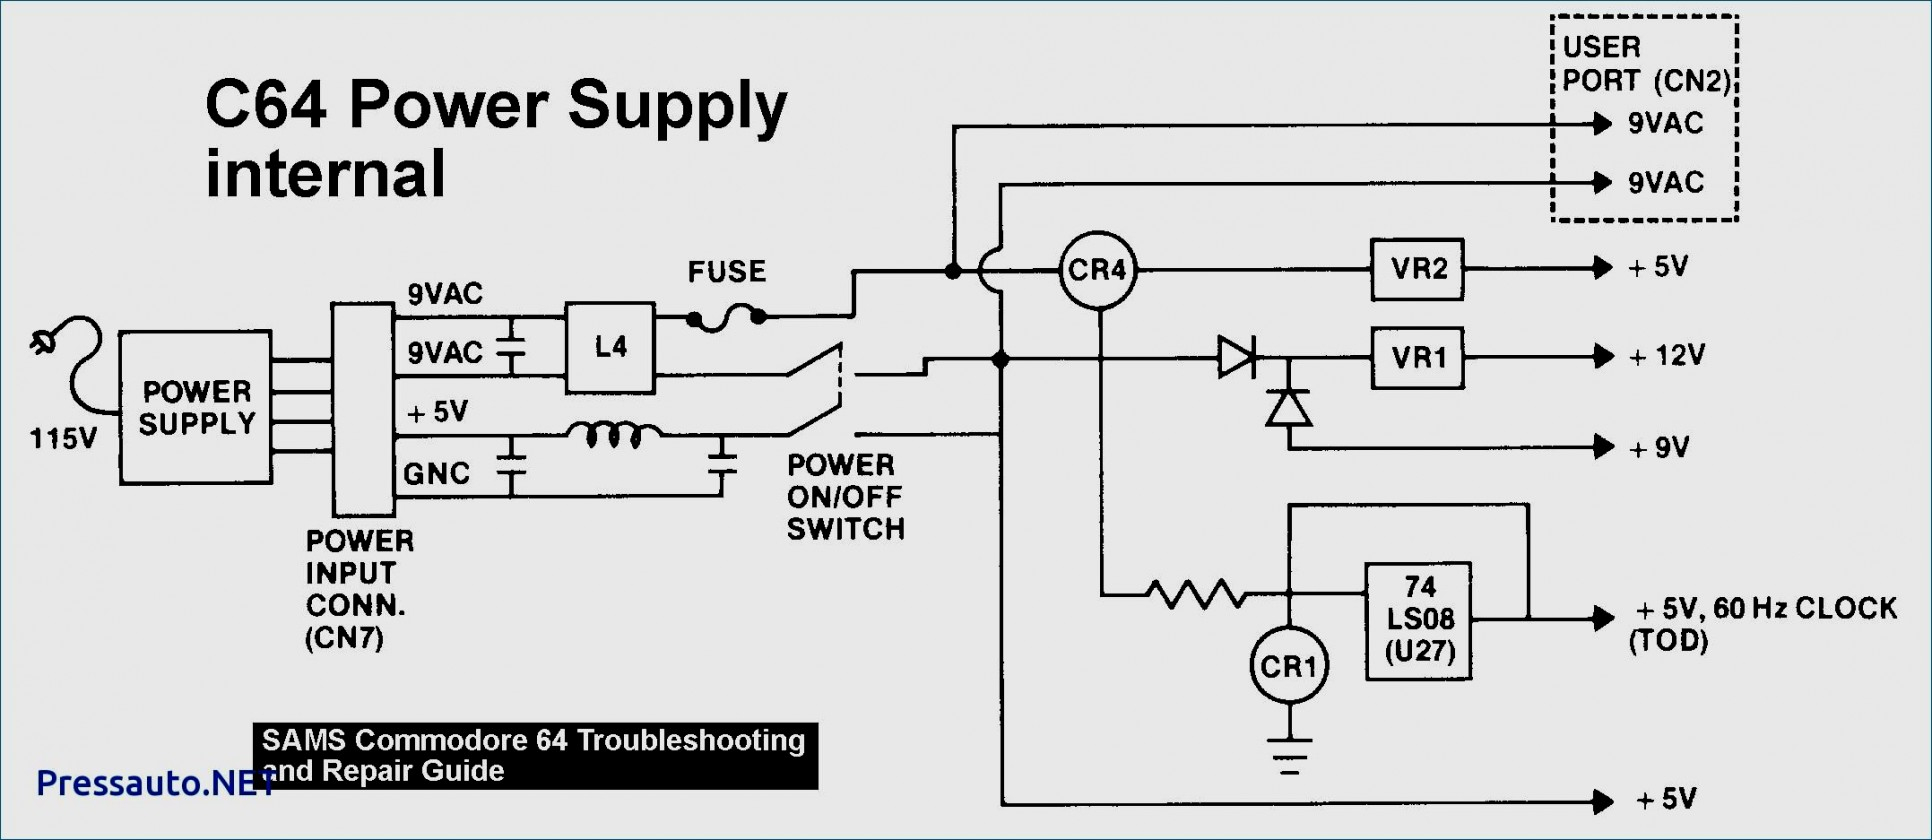 Computer Power Supply Wiring Schematic | Wiring Diagram - Computer Power Supply Wiring Diagram